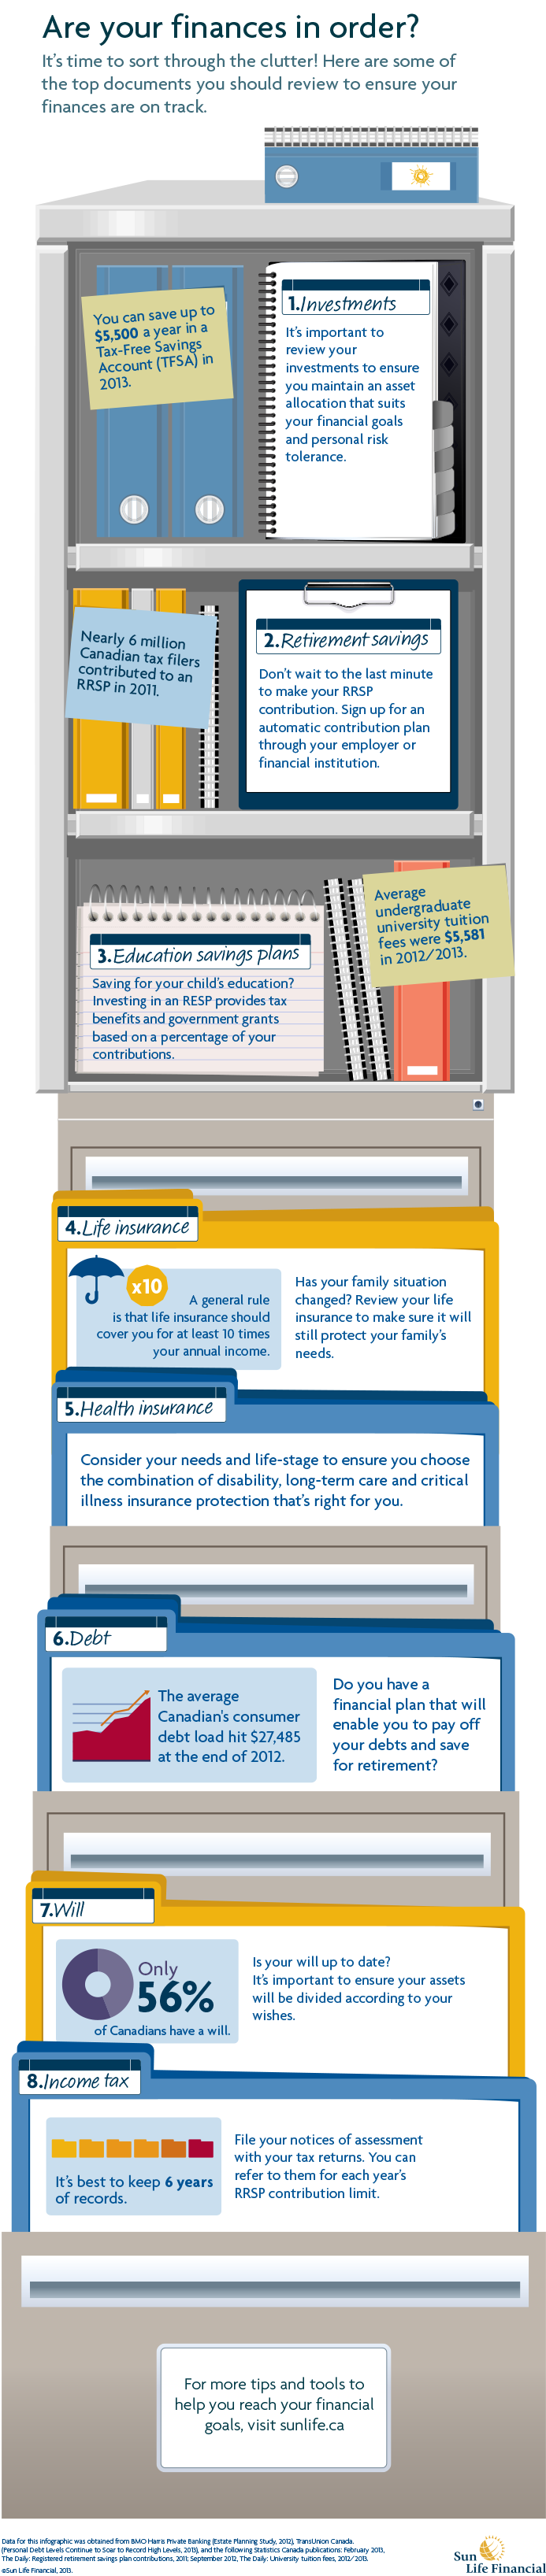 Are your finances in order? (Infographic) Text alternative to follow